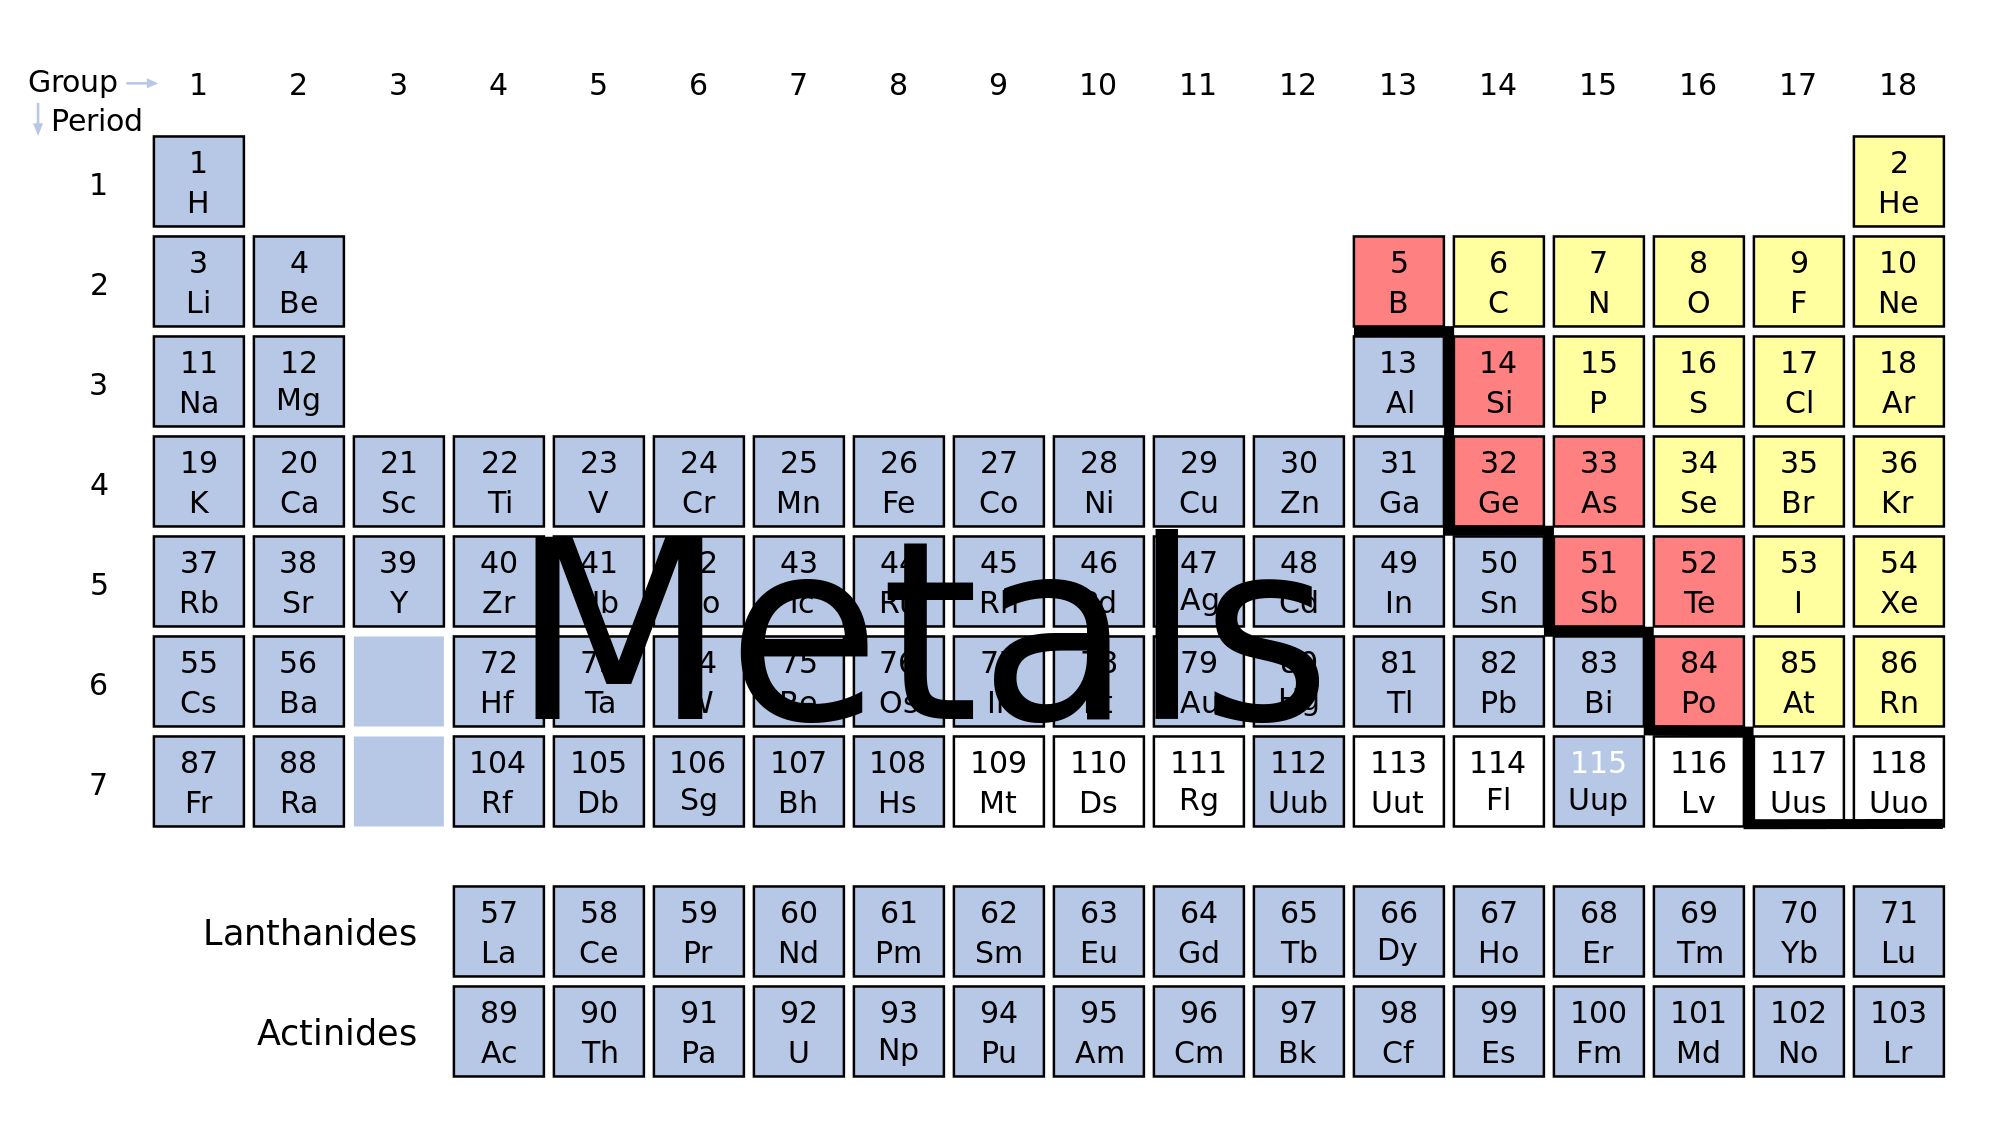 Related image periodic table of the elements groups patterns periodic table related image urtaz Choice Image